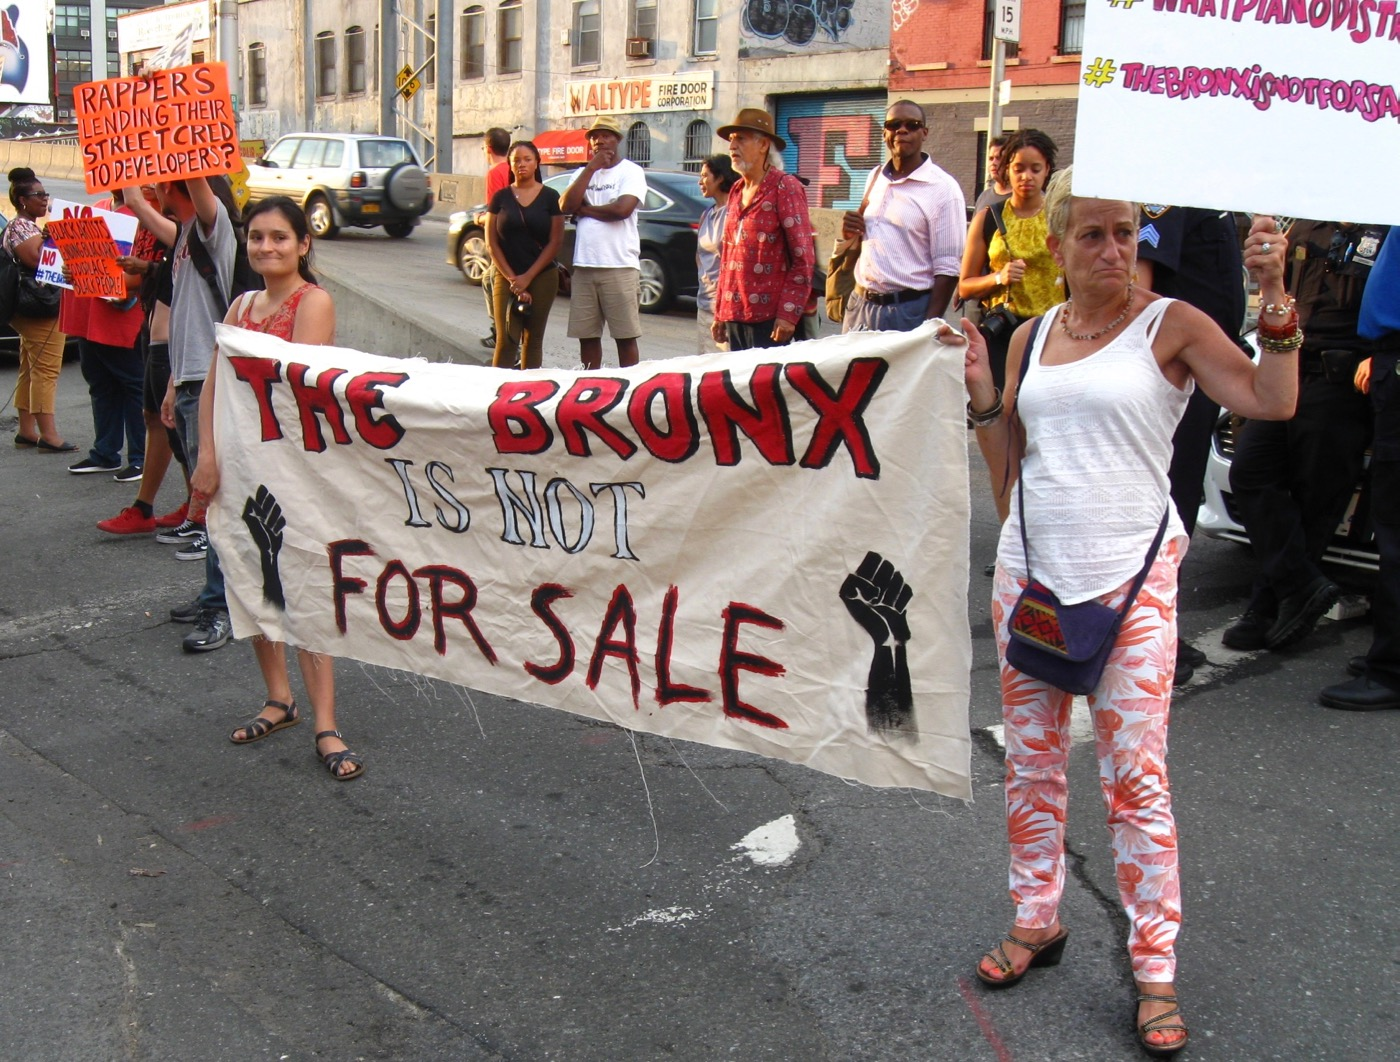 Activists Protest Swizz Beatz's Art Fair in the Bronx